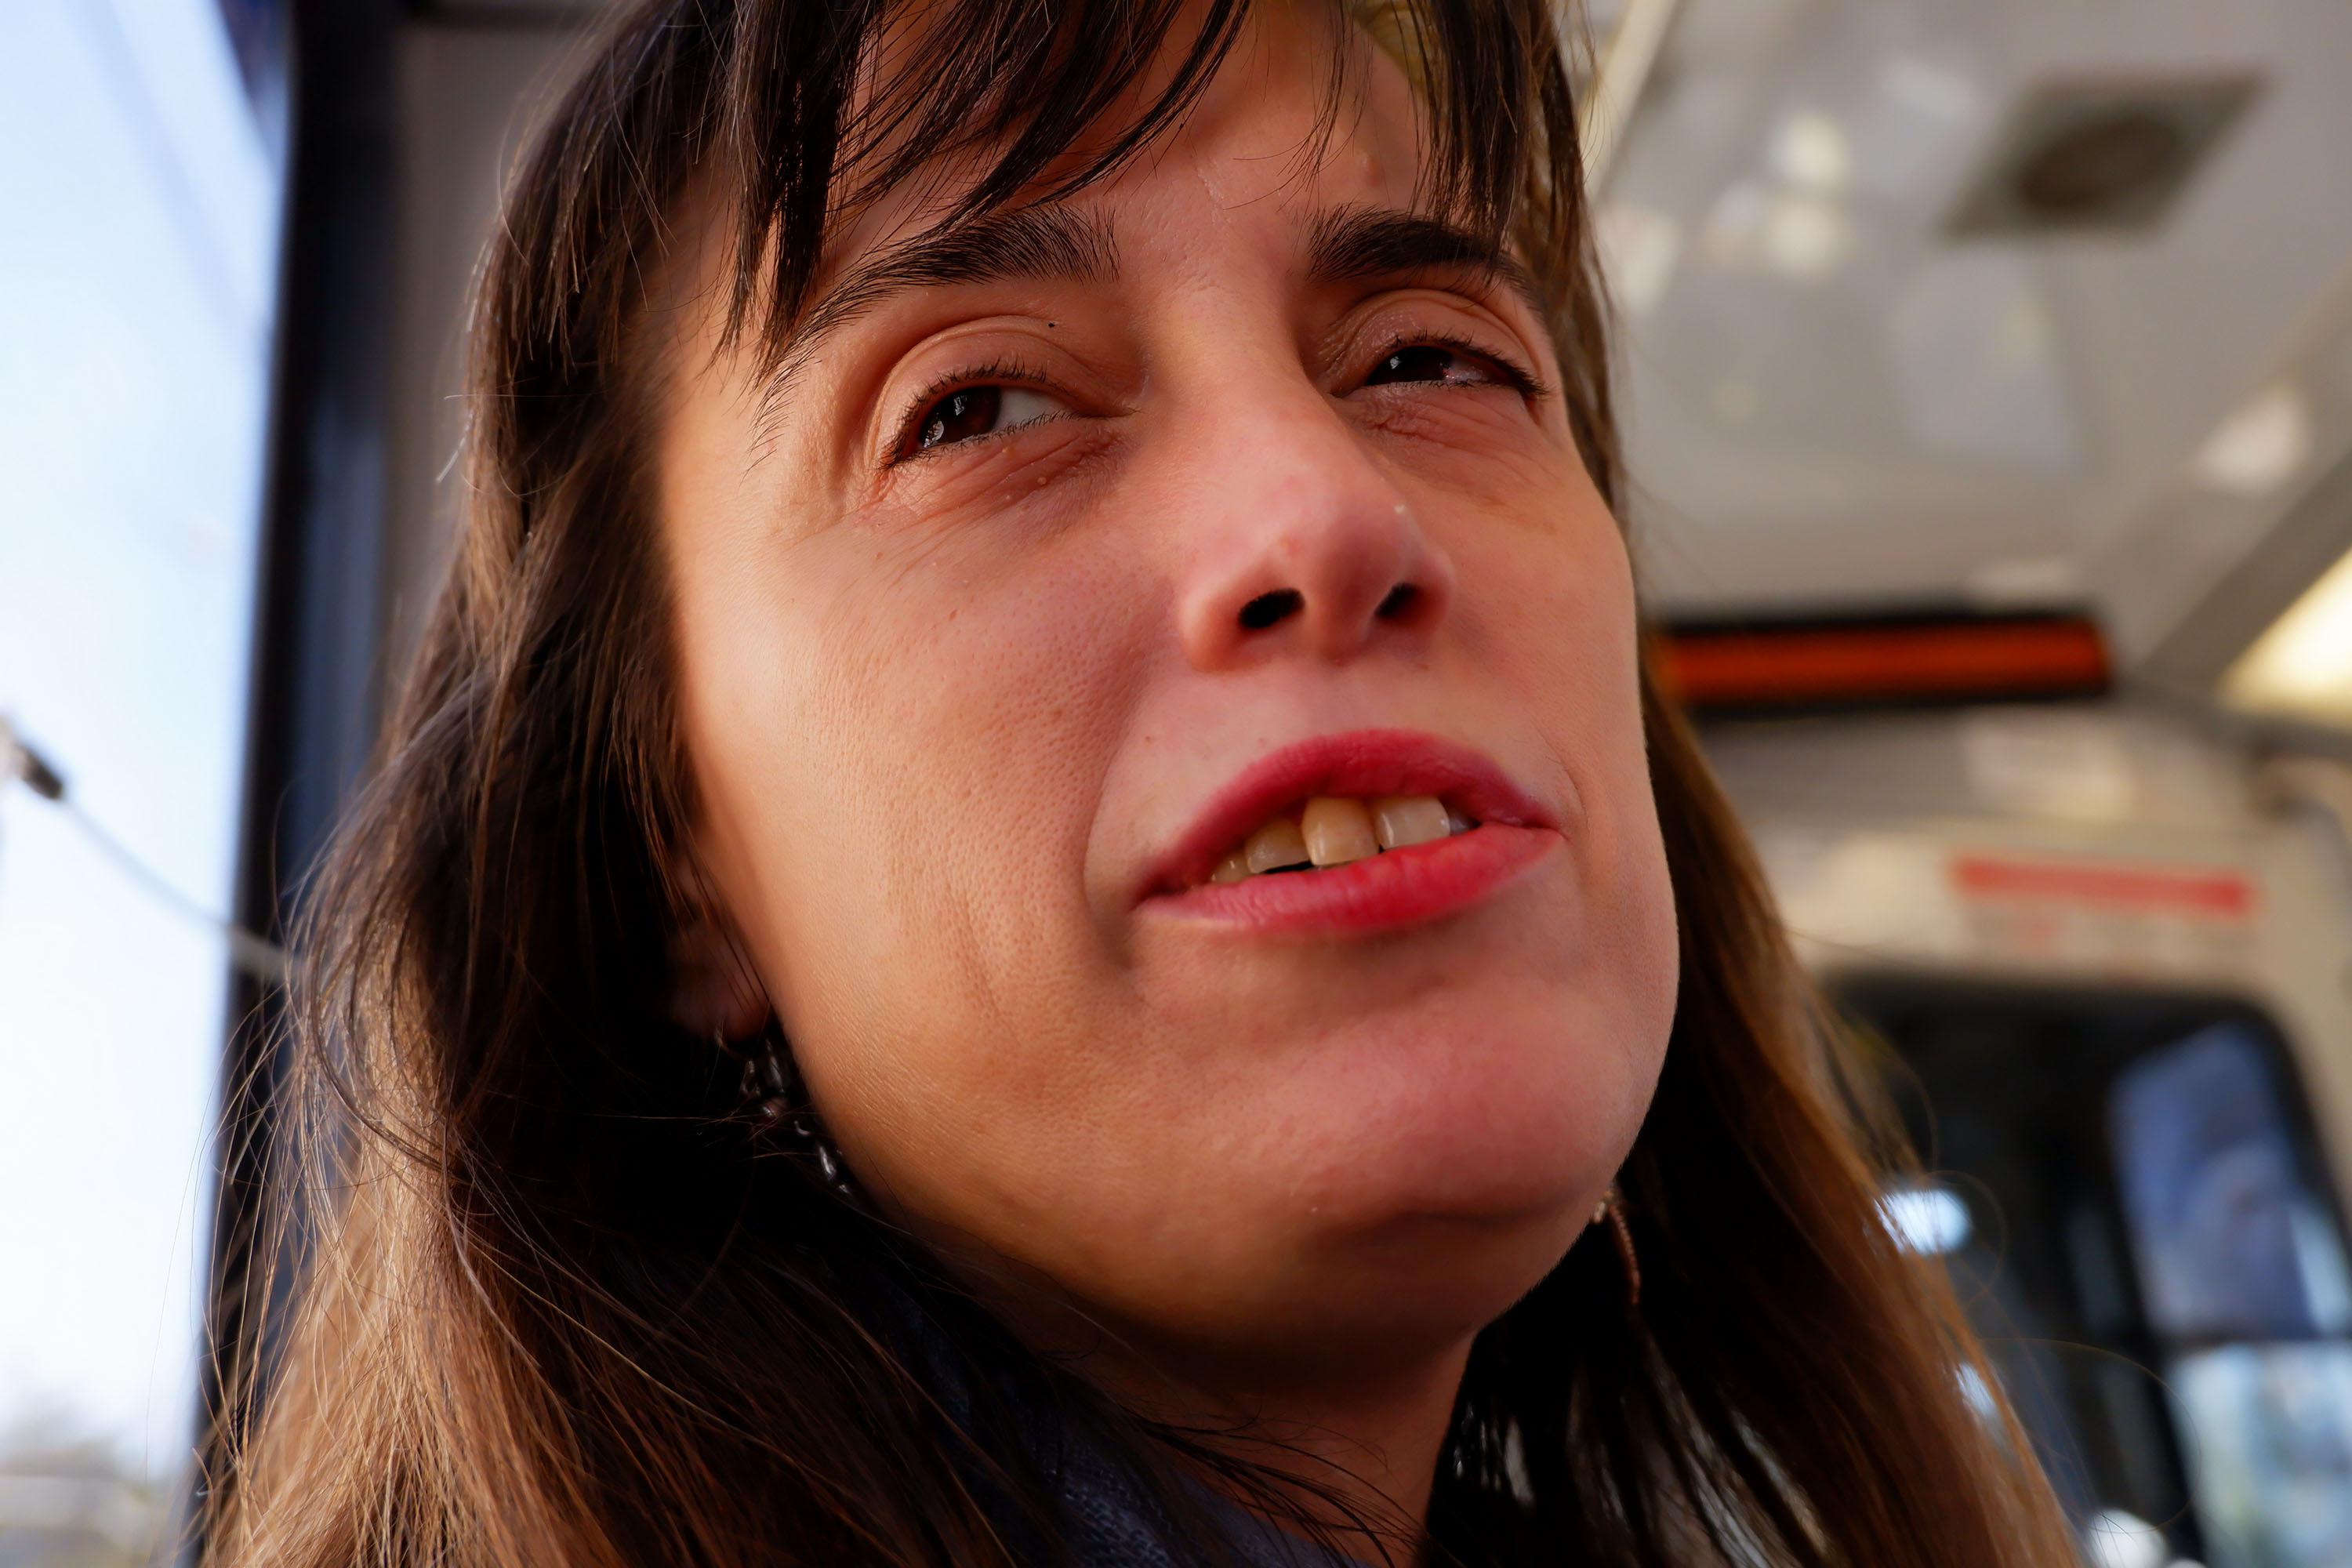 colleen on muni (2018)